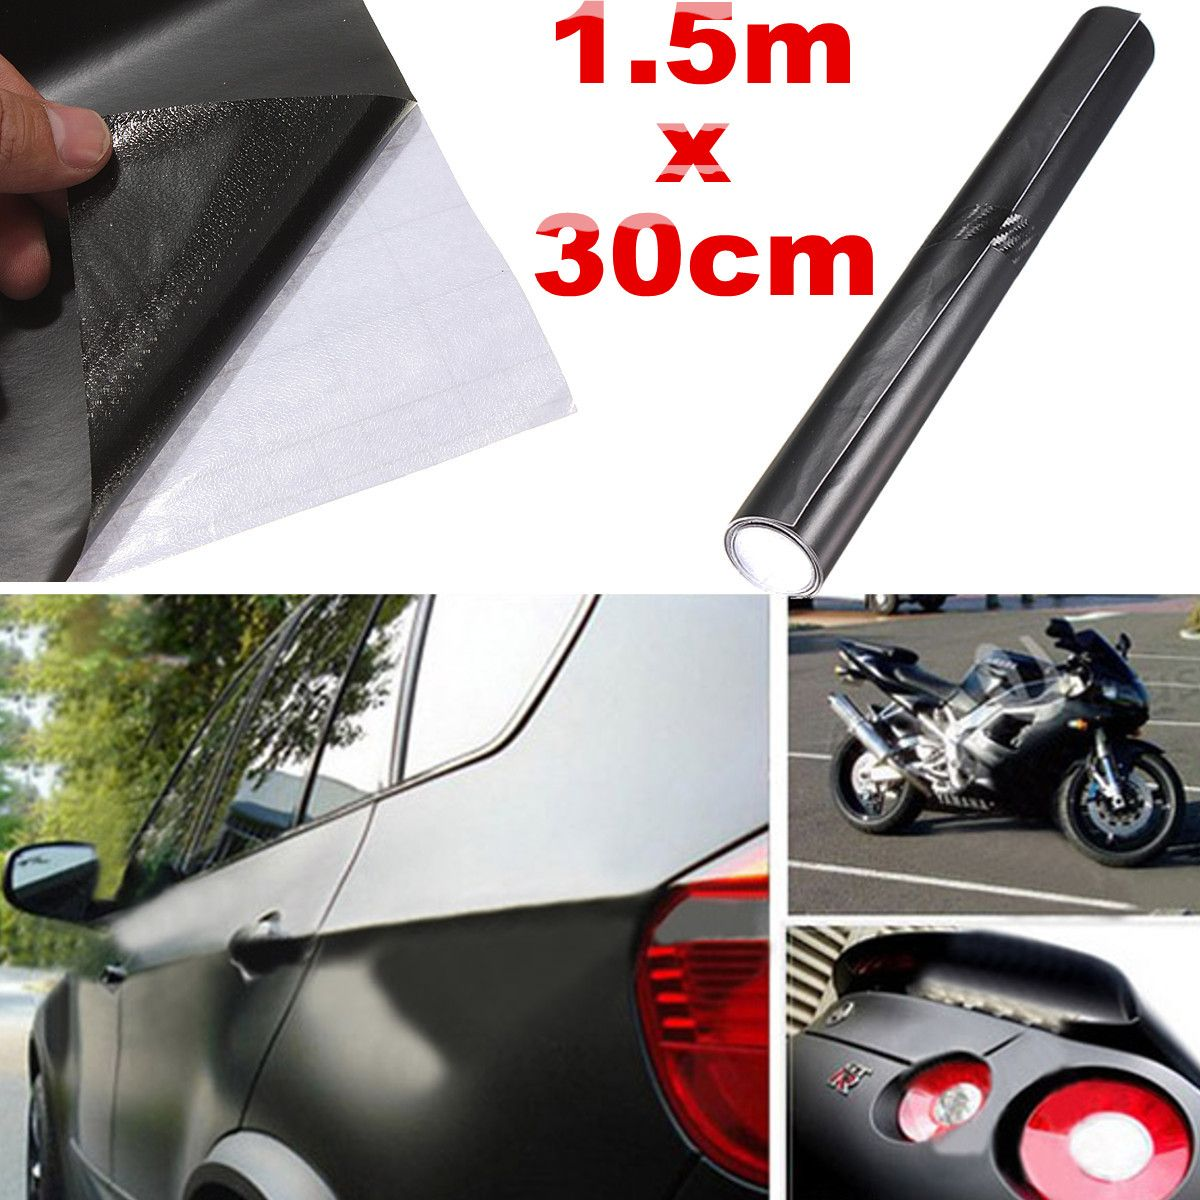 150x30cm Matt Matte Black Car Auto Body Sticker Decal Self Adhesive Wrapping Vinyl Wrap Sheet Film